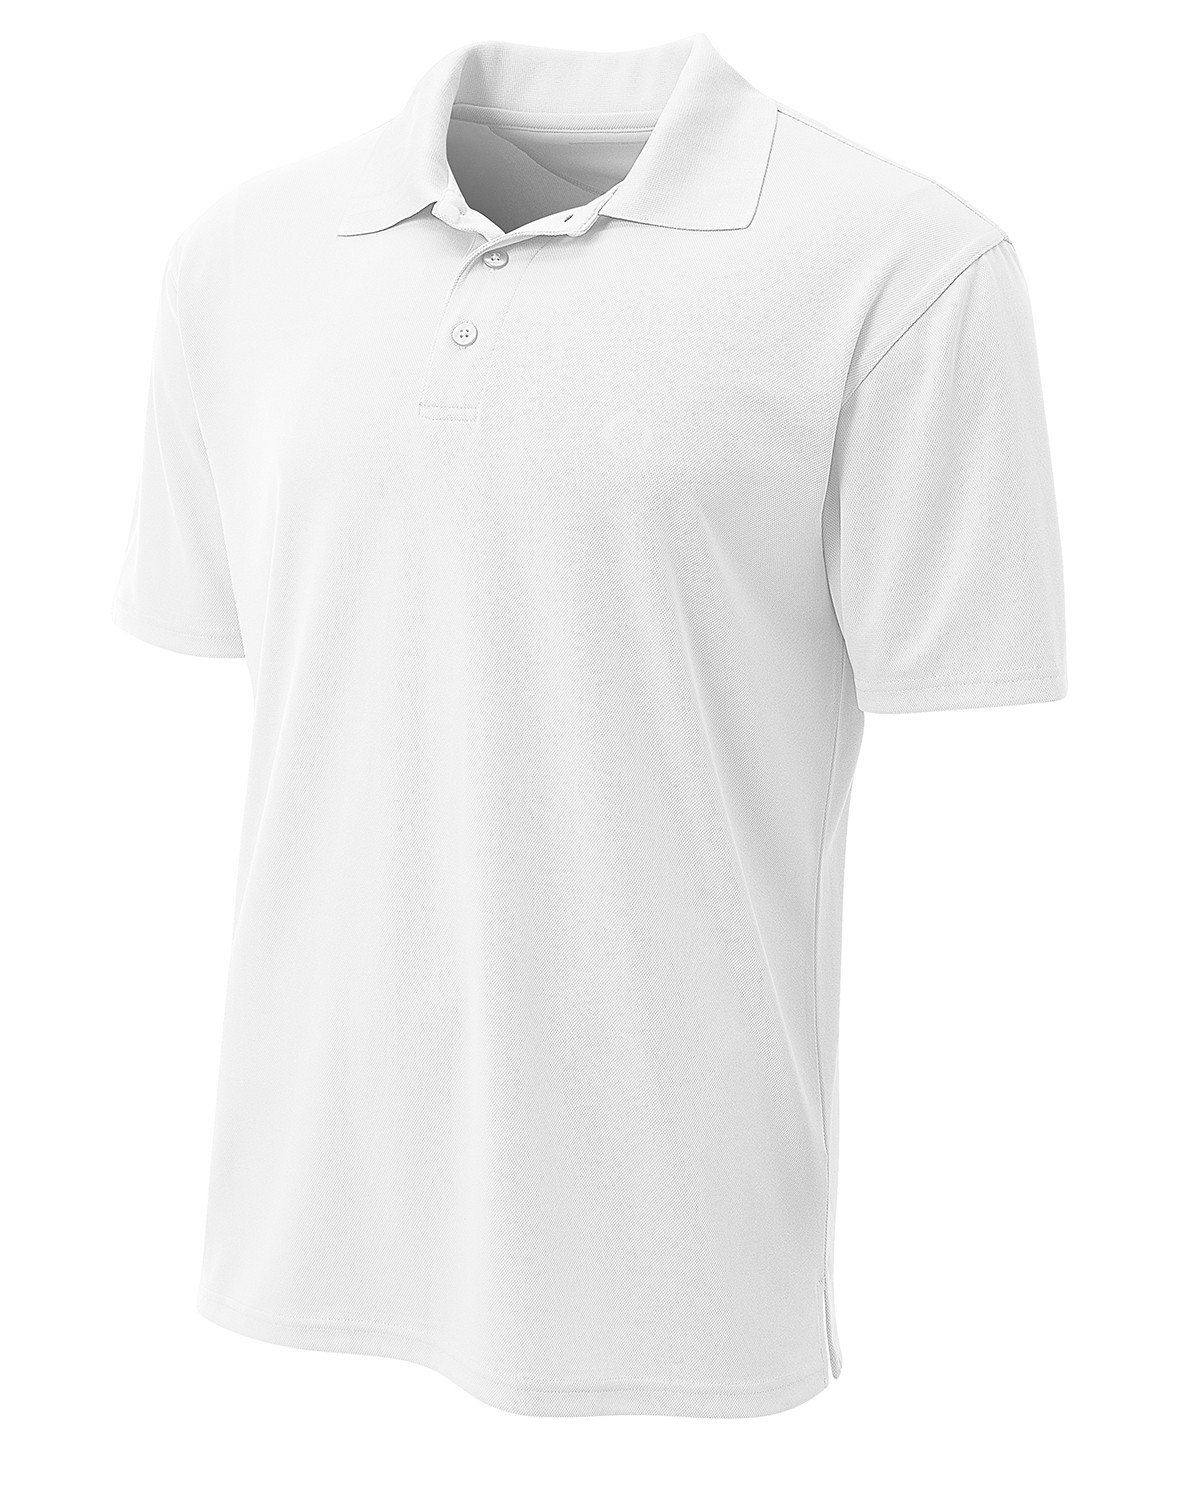 A4 N3008 Men's Performance Pique Polo